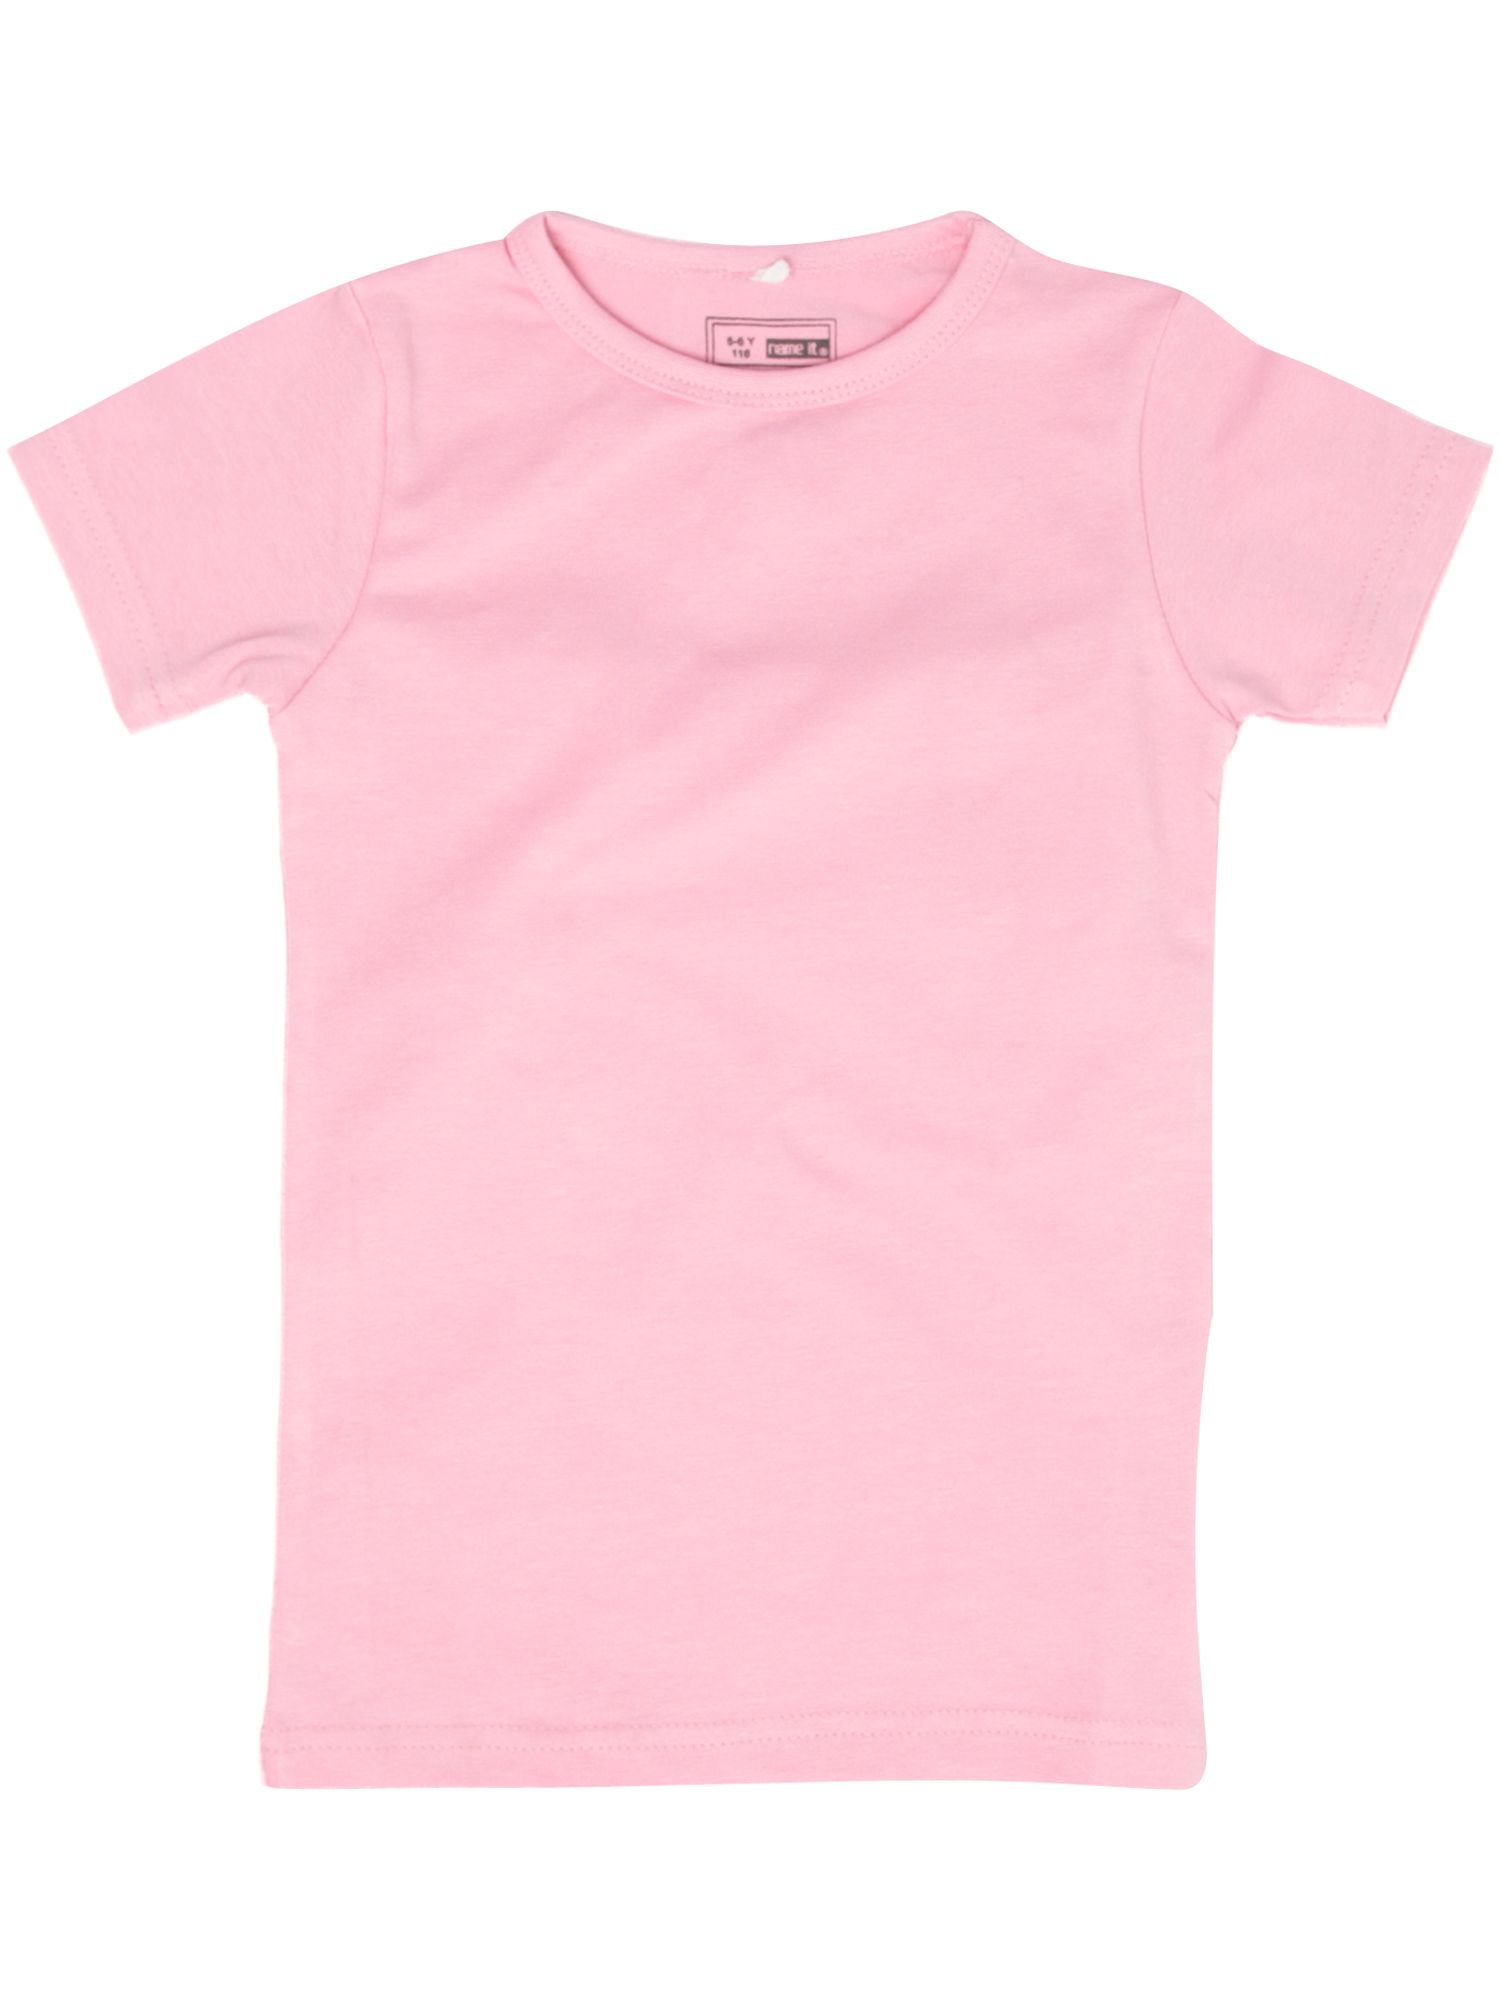 June 2014 artee shirt part 2 for Pastel colored men s t shirts